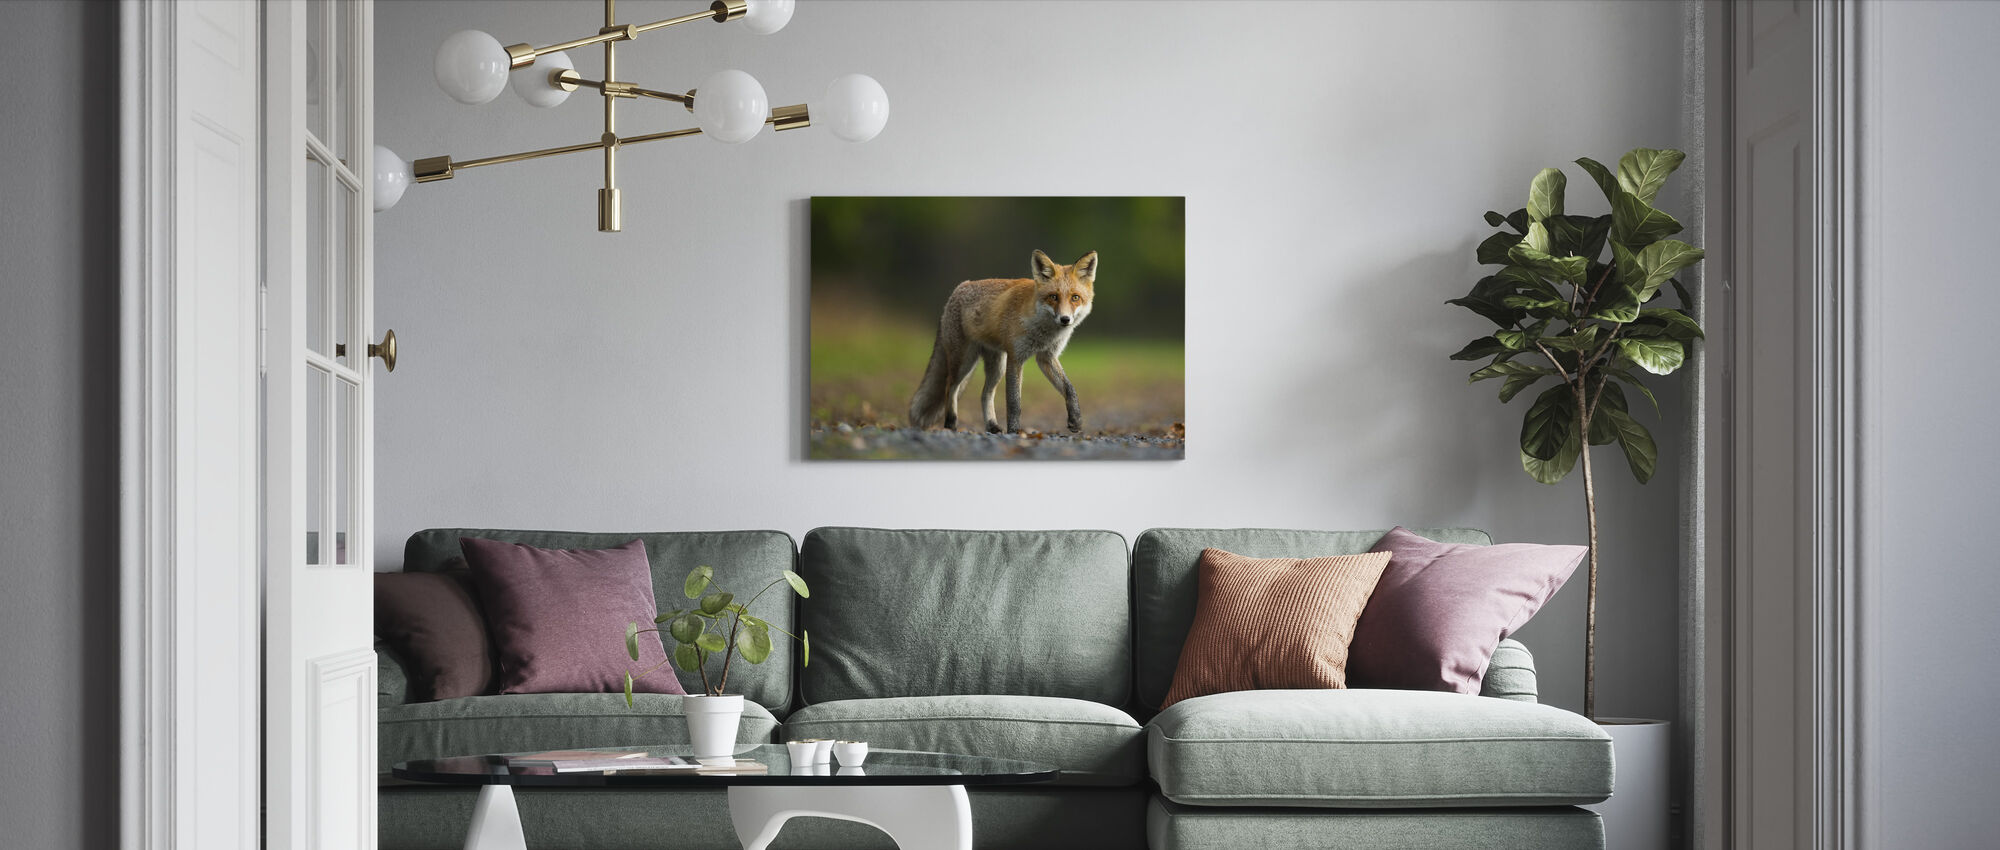 Red fox on his way - Canvas print - Living Room